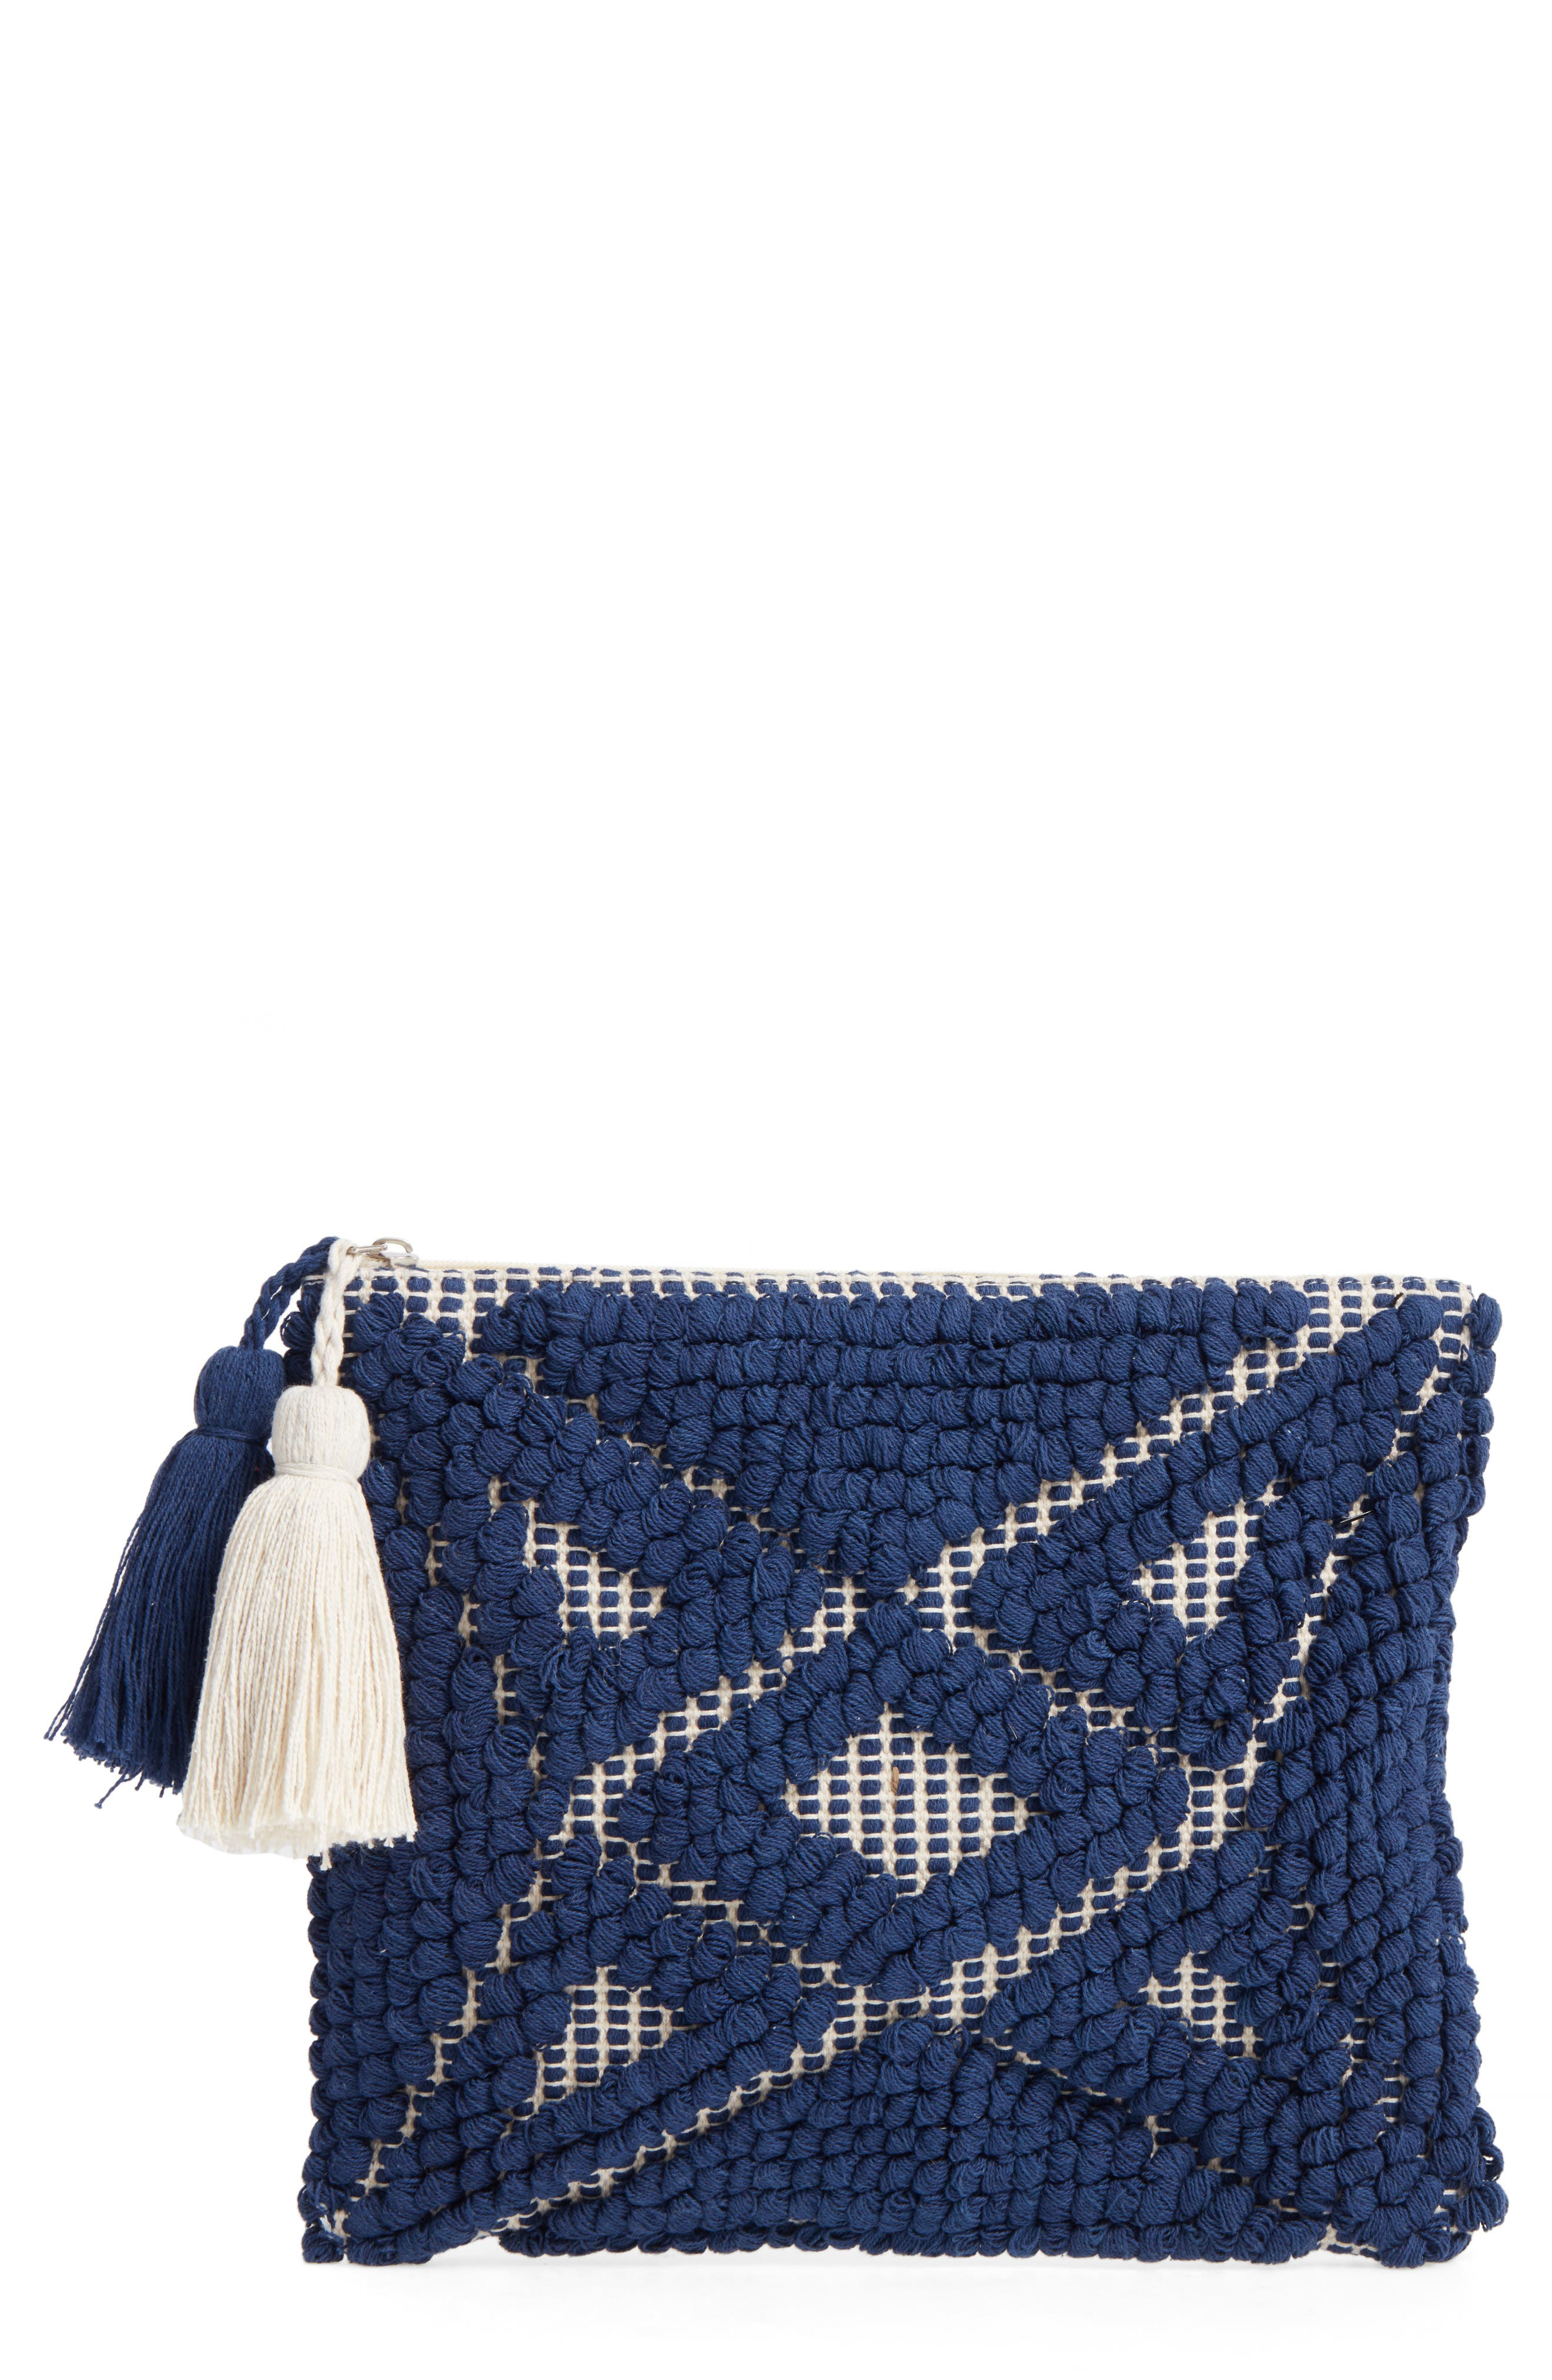 Main Image - Sole Society Palisades Tasseled Woven Clutch